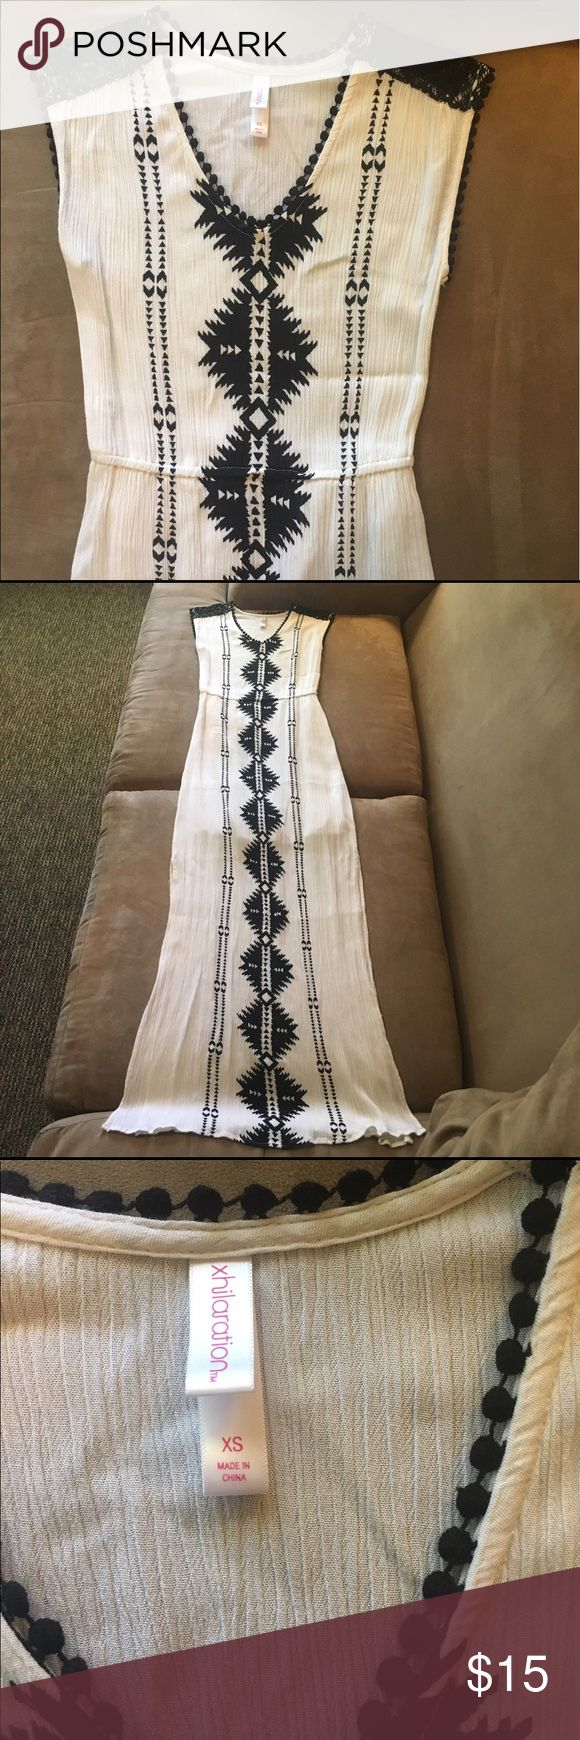 Aztec Maxi Dress This off-white colored ribbed maxi features a black Aztec print with lacy details on the shoulders. Lined to just above the knee. Two slits to the knee on either side. I am 5'7 and this comes to my ankles. No trades, sorry! Xhilaration Dresses Maxi